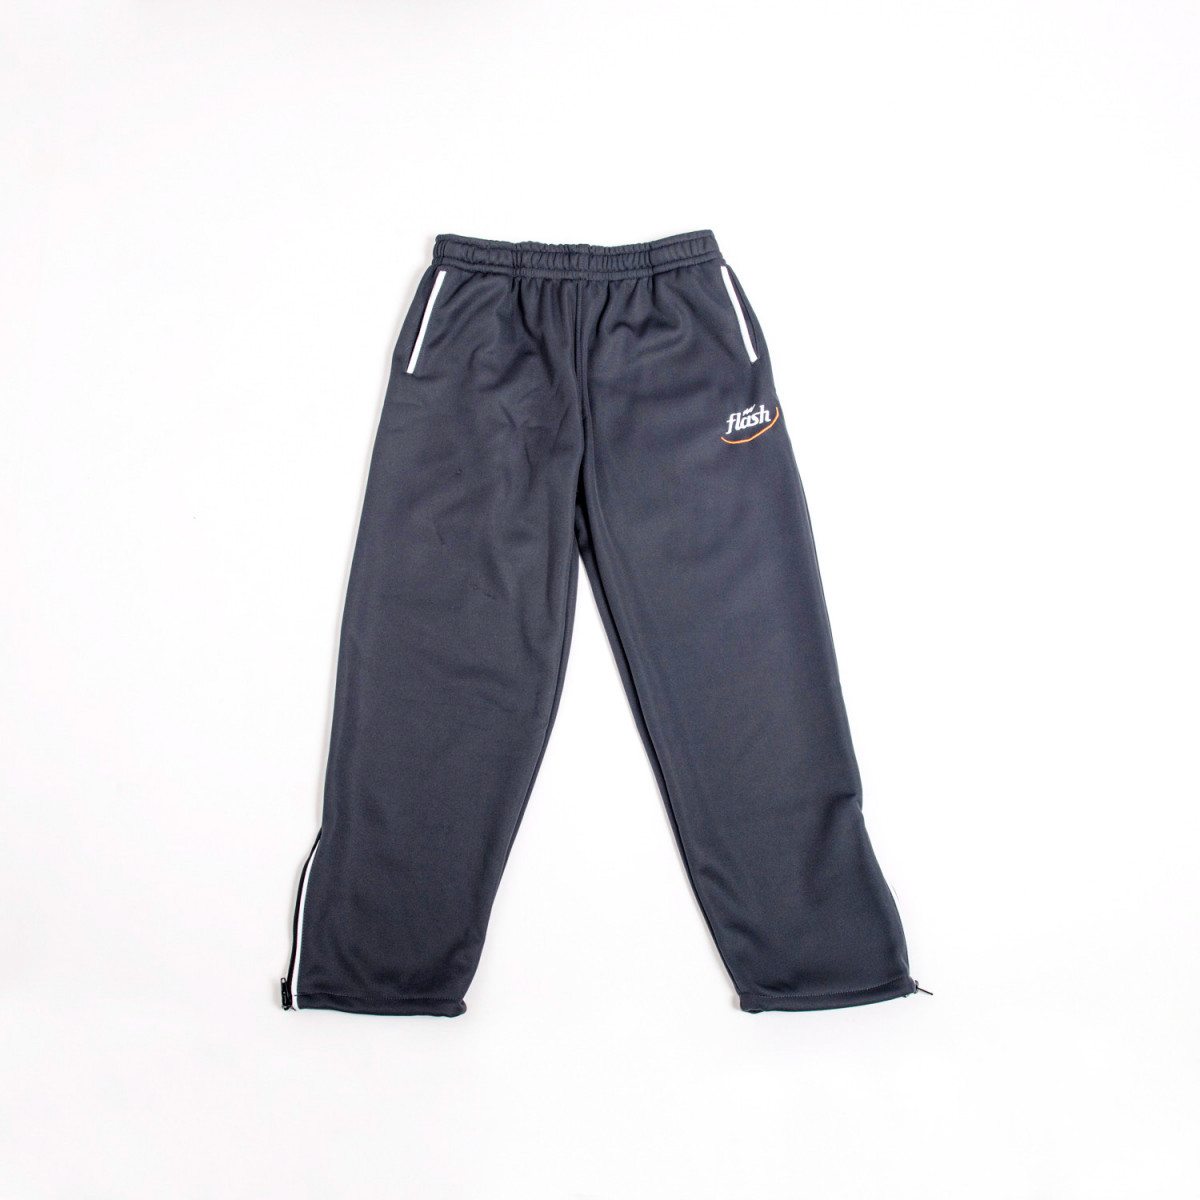 PANTALON FLASH DEPORTIVO C/FRIZA JR